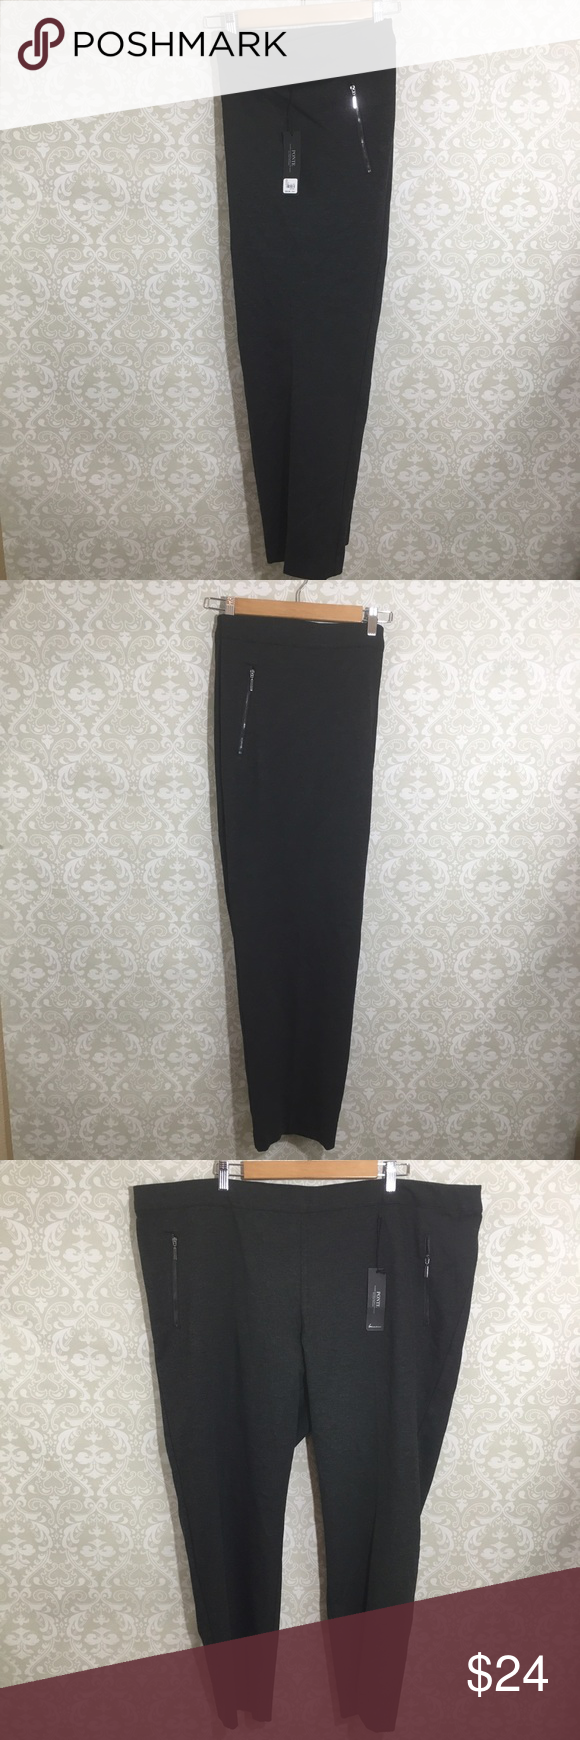 "NWT LANE BRYANT Size 26/28 Gray Cropped PONTE NWT Retail: $59.95 LANE BRYANT  ""PONTE"" Style Women Plus Size 26/28  Gray  Cropped Career Casual Work Pants Stretchy  Please use measurements to determine best fit.  All measurements are approximate and are measured laying flat.   Waist: 24"" Top to bottom: 41"" Inseam: 29"" Hip: 27.5"" Lane Bryant Pants Ankle & Cropped"